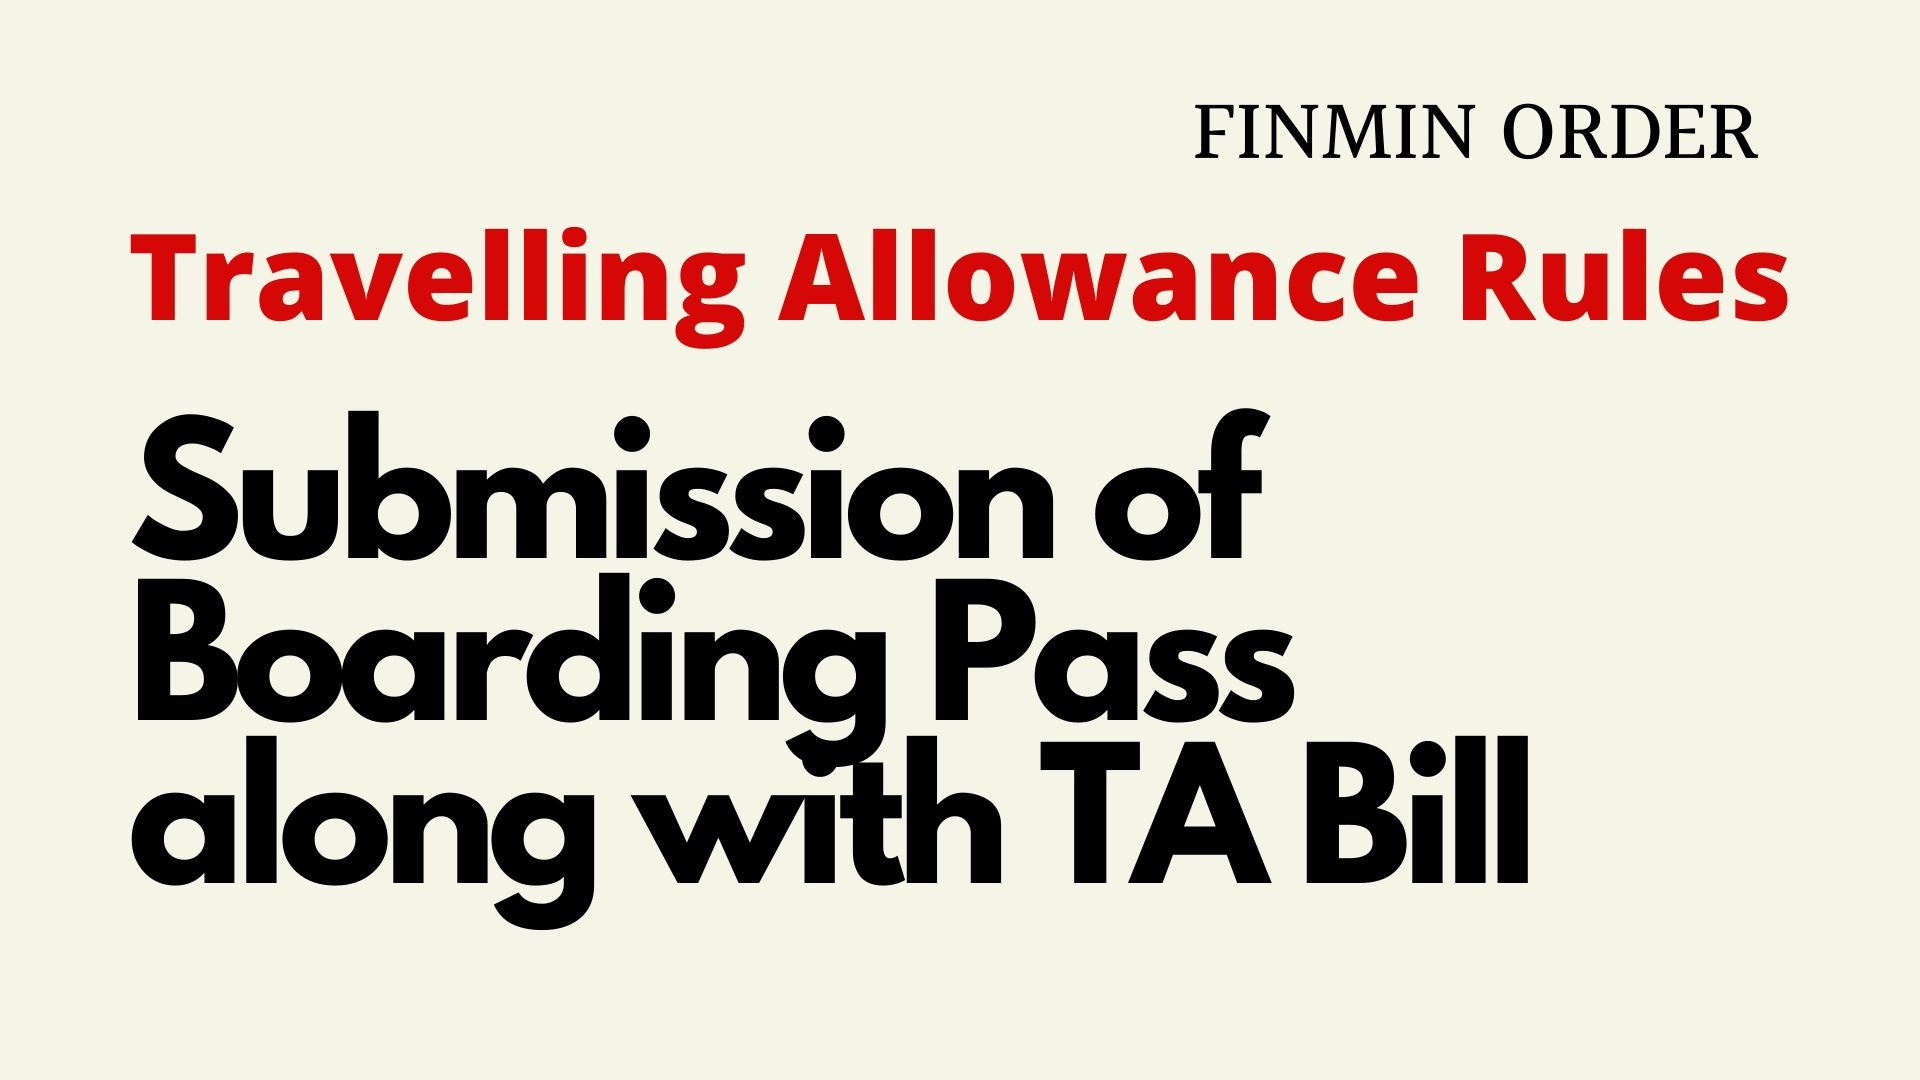 Travelling Allowance Rules